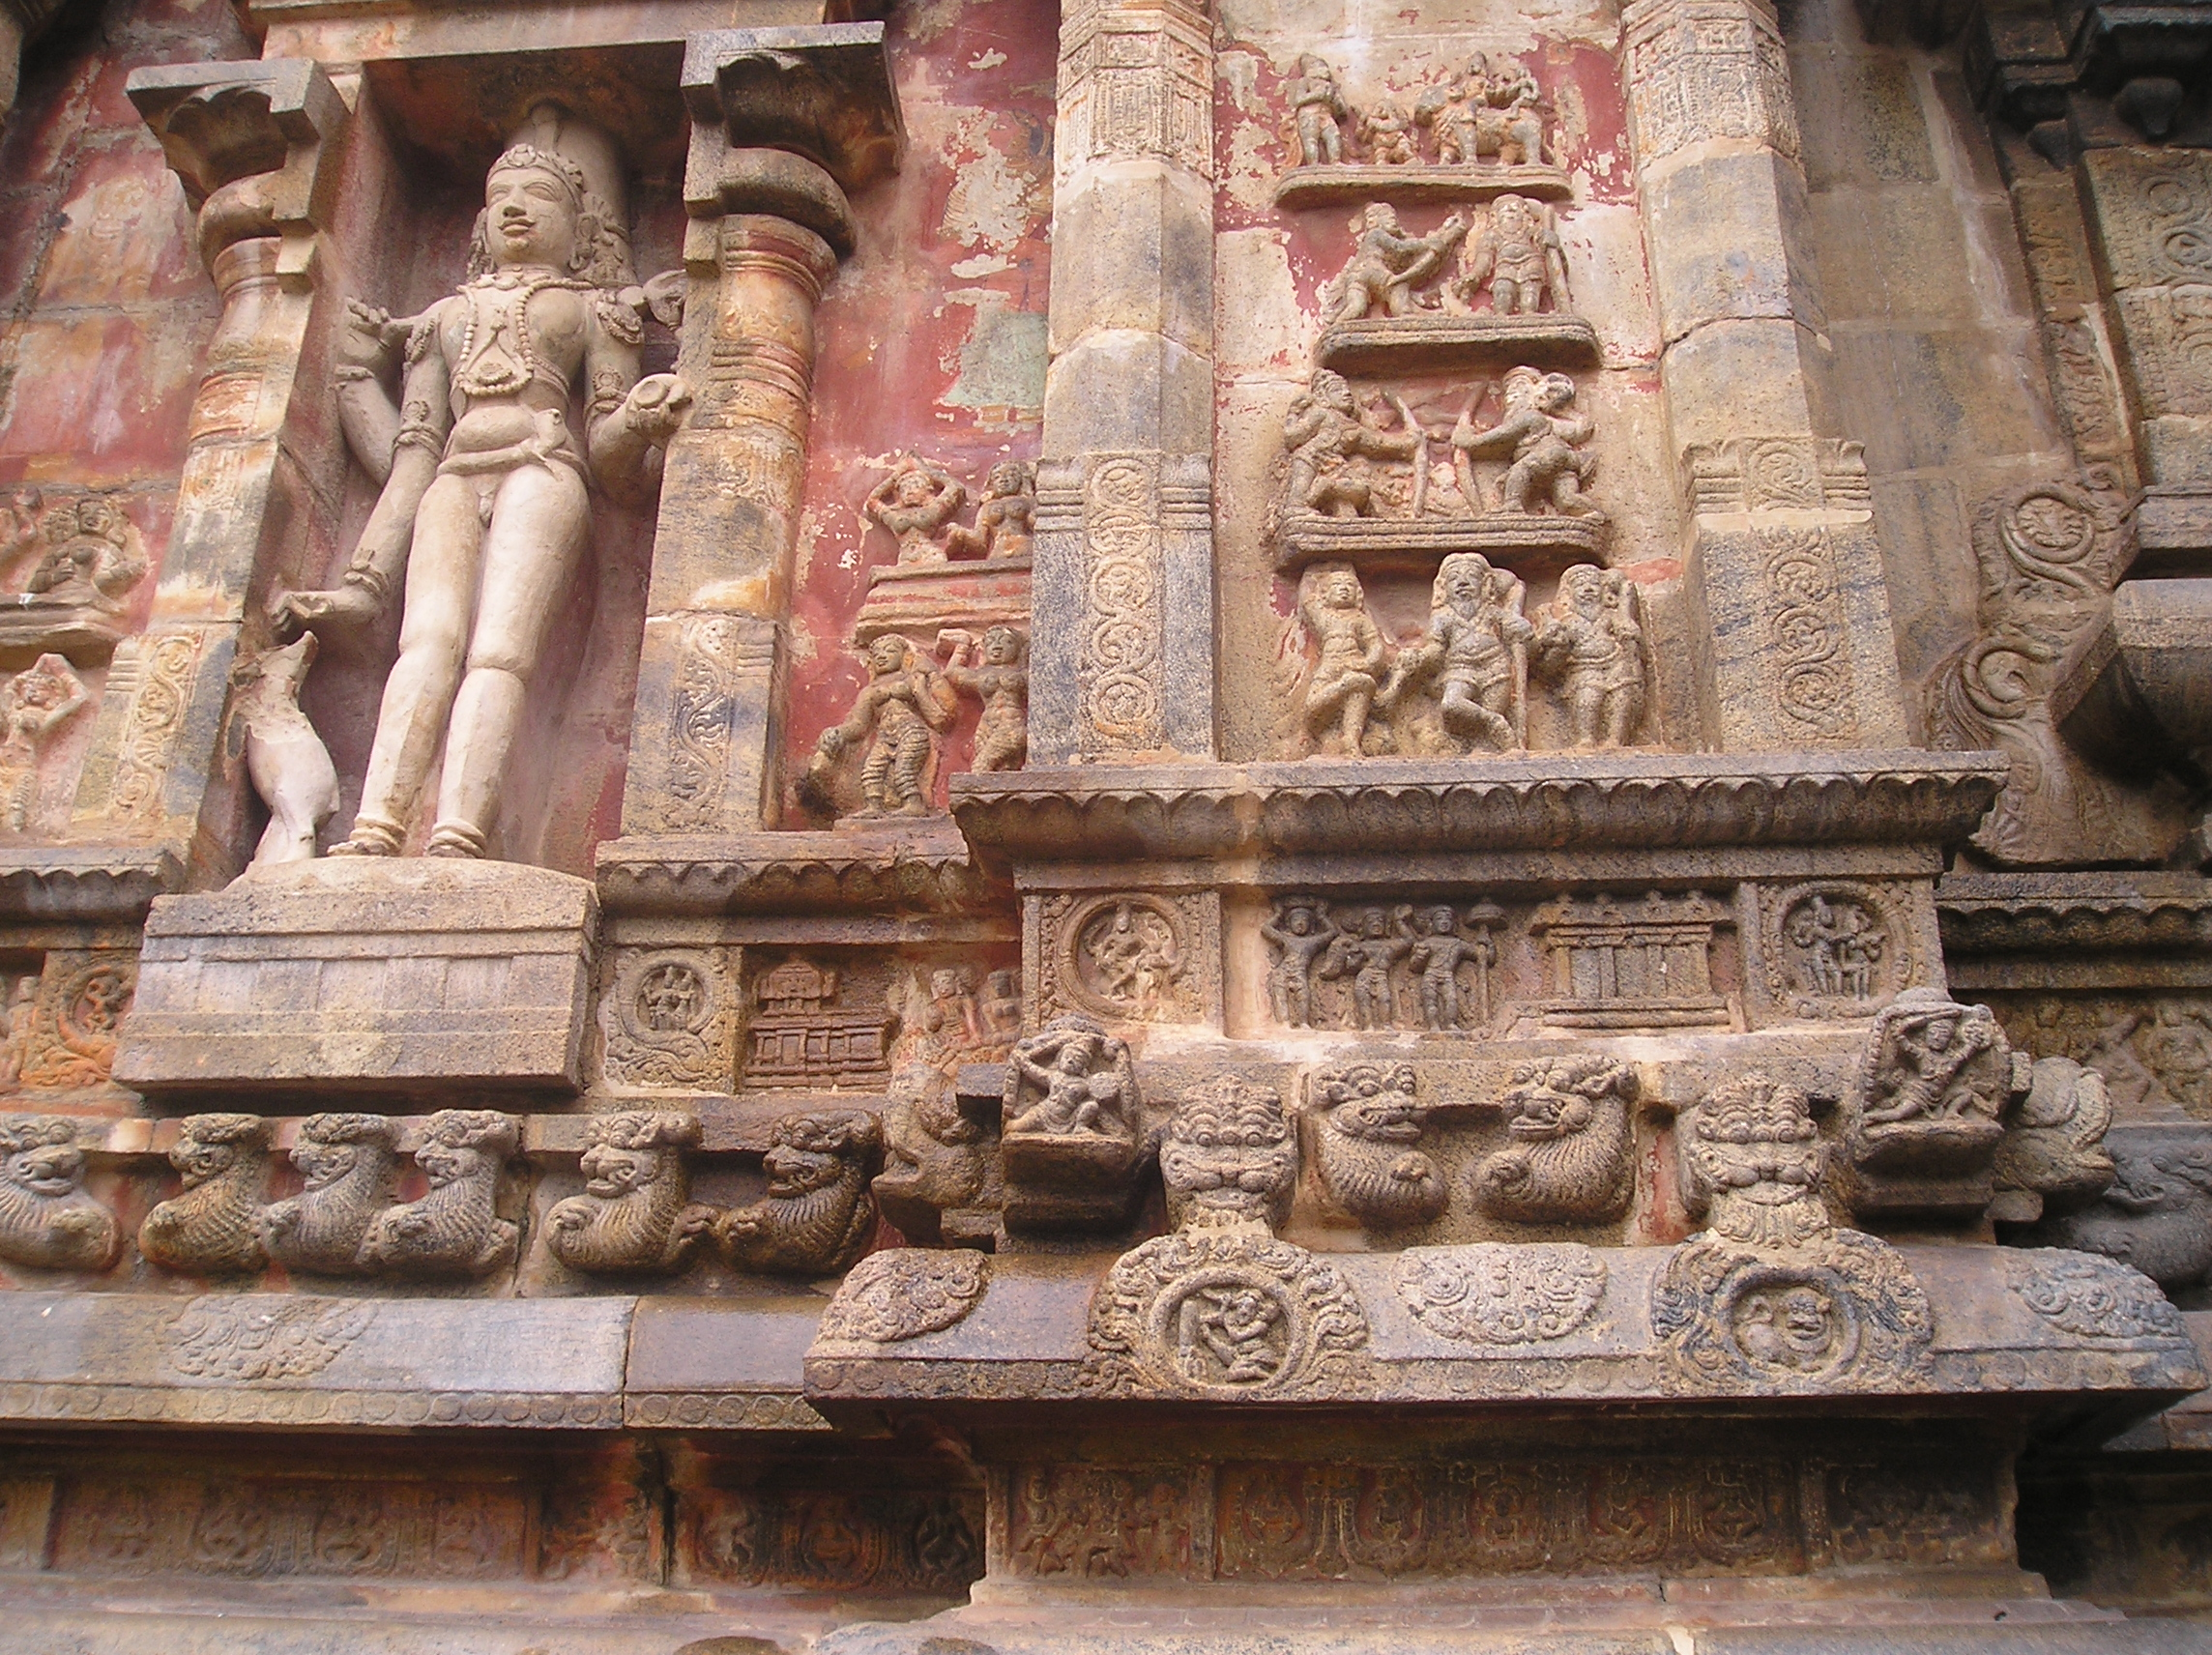 Sculpture at Airavateshwarar temple, Darasuram